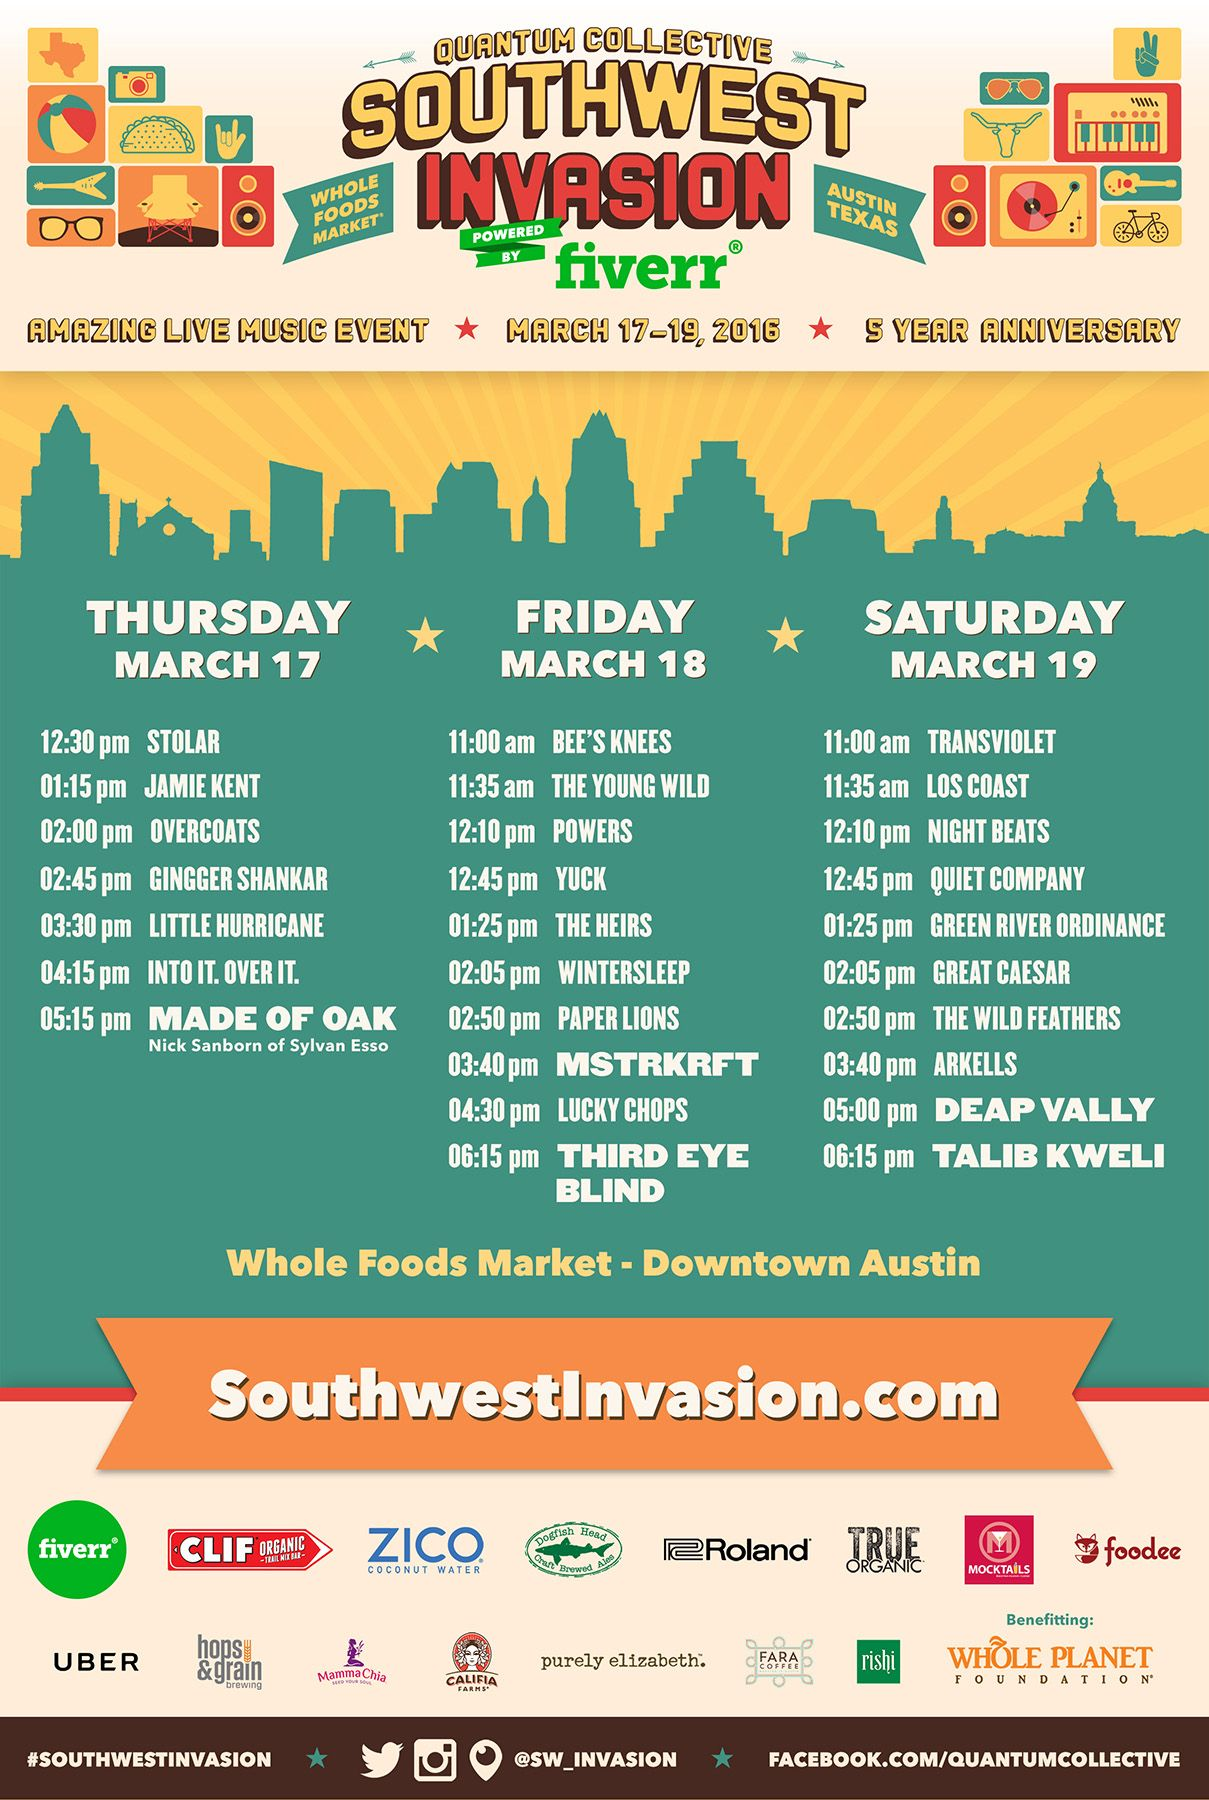 Quantum Collective Southwest Invasion 2016 at Whole Foods - March 17